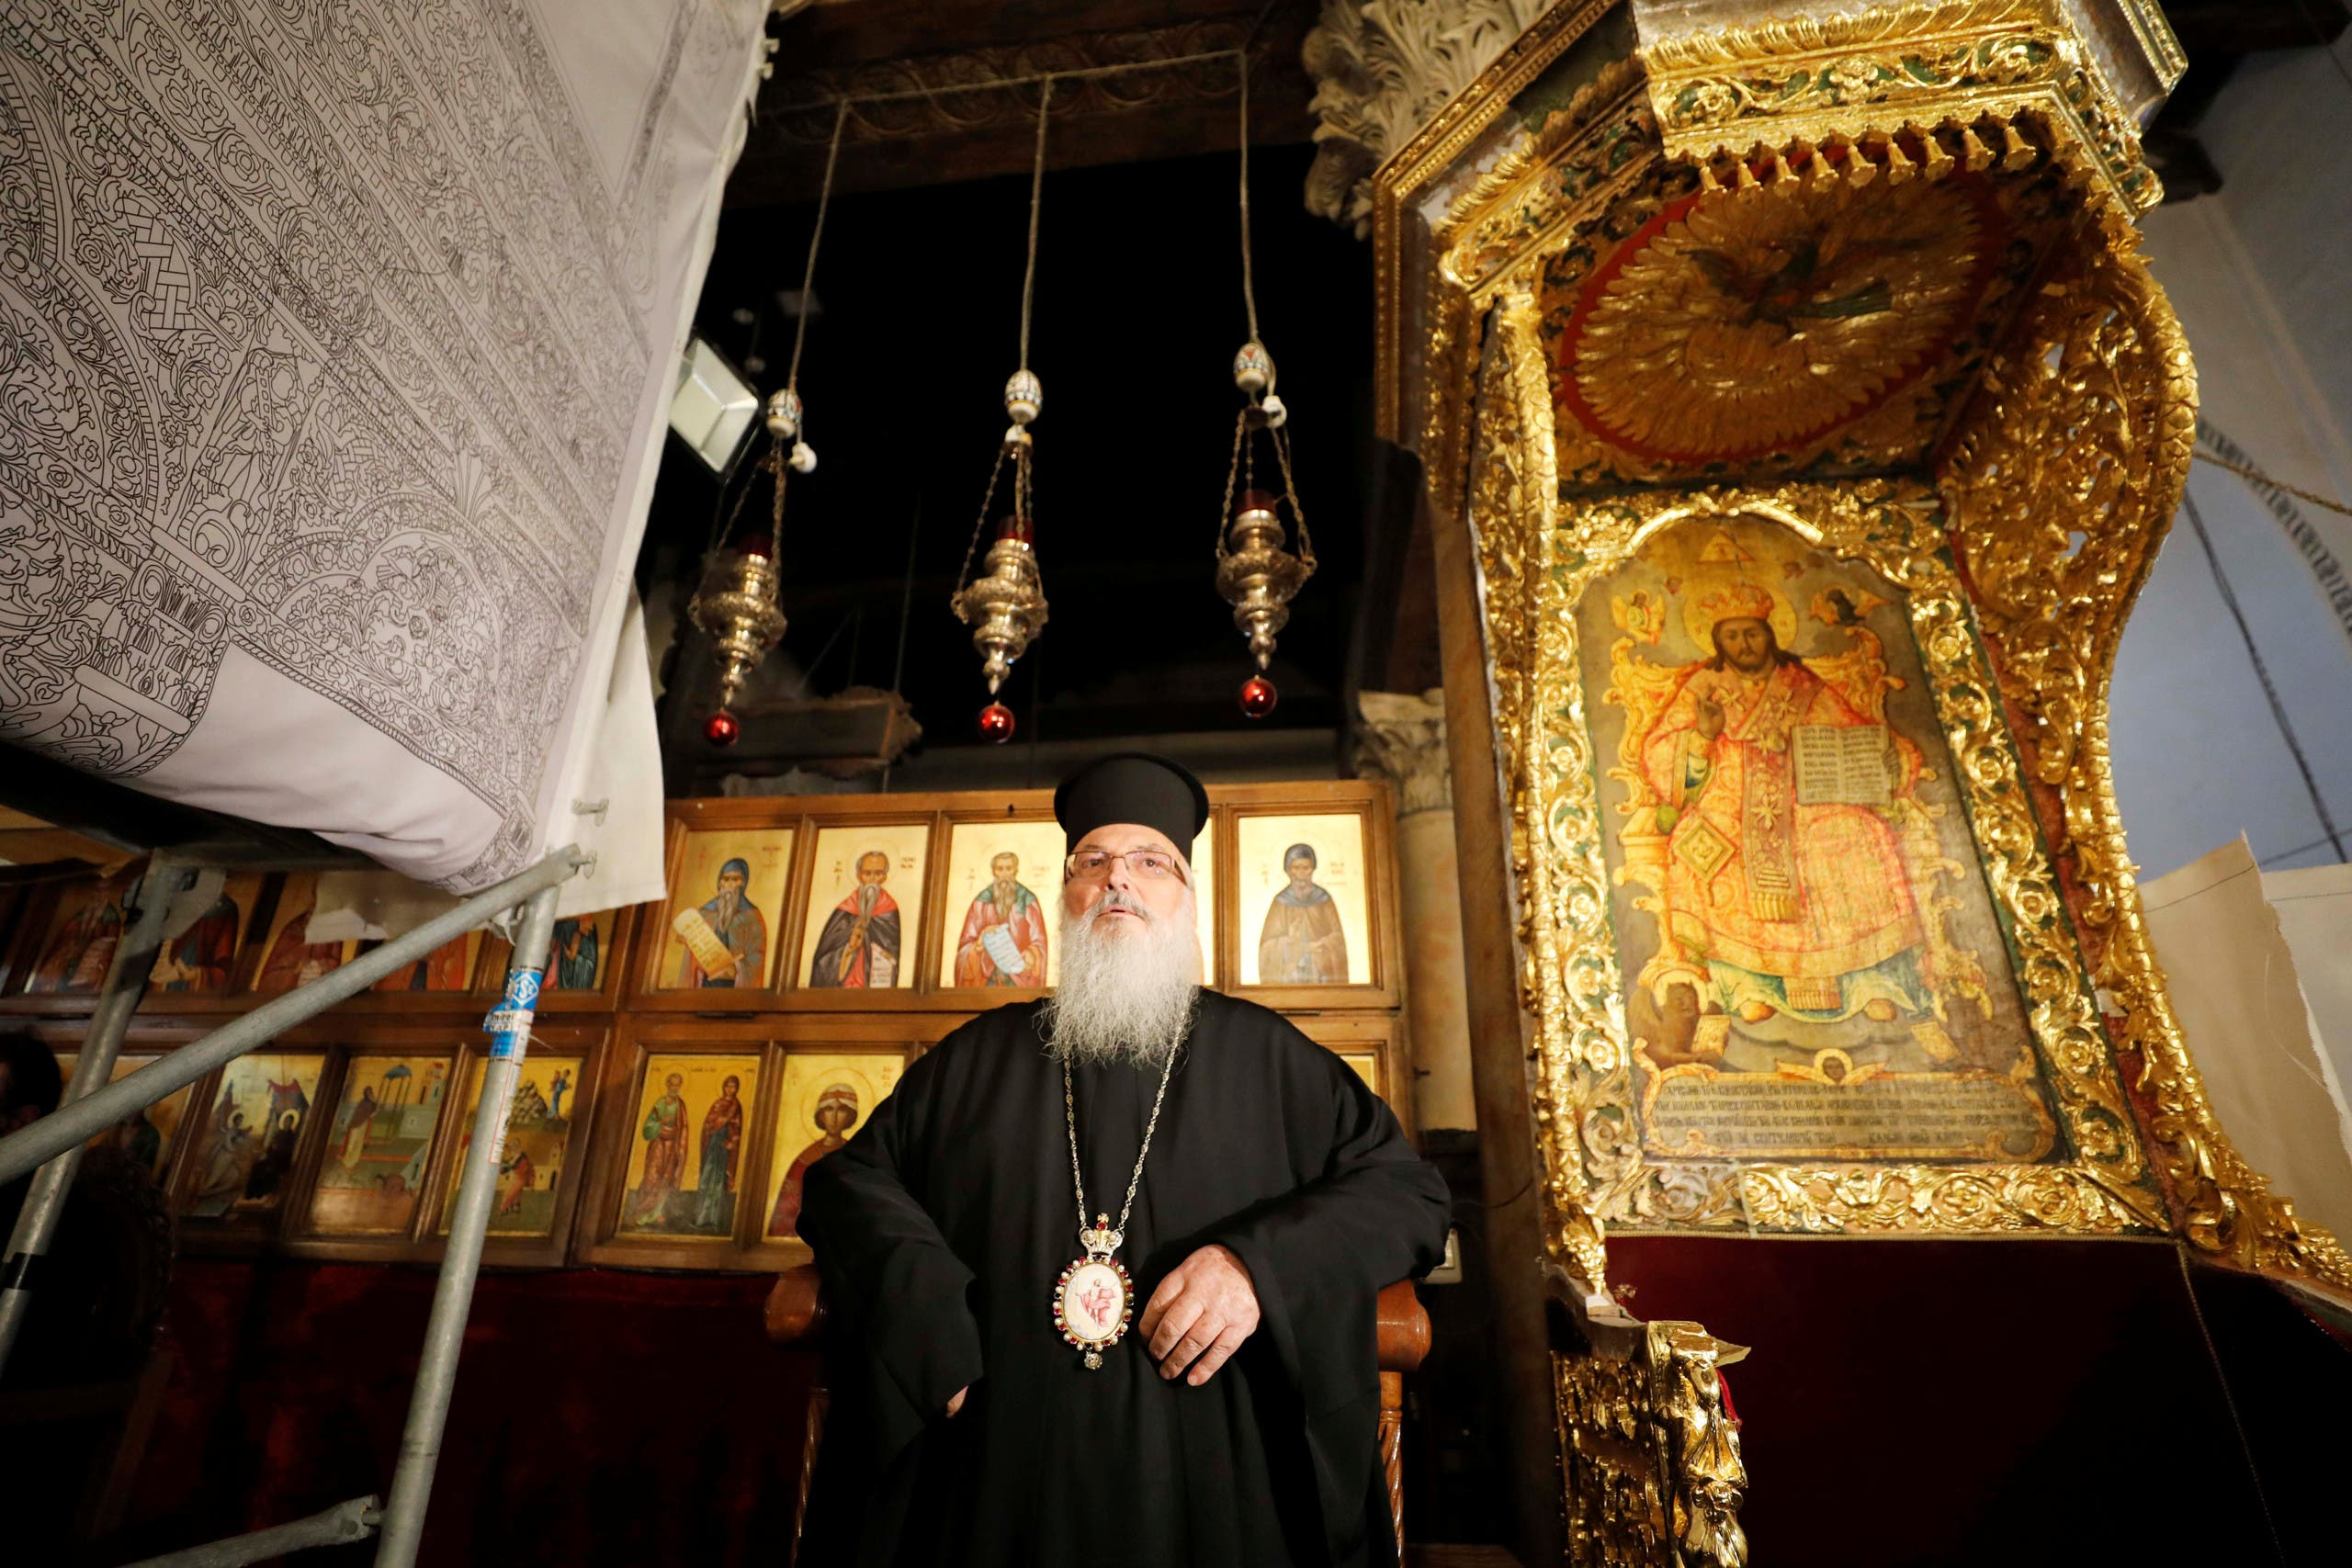 The head of the Greek Orthodox Church in Bethlehem, bishop Theophylactos, reopens the Church of the Nativity as Palestinians ease restrictions of the coronavirus disease (COVID-19), in Bethlehem in the Israeli-occupied West Bank May 26, 2020. (Reuters)